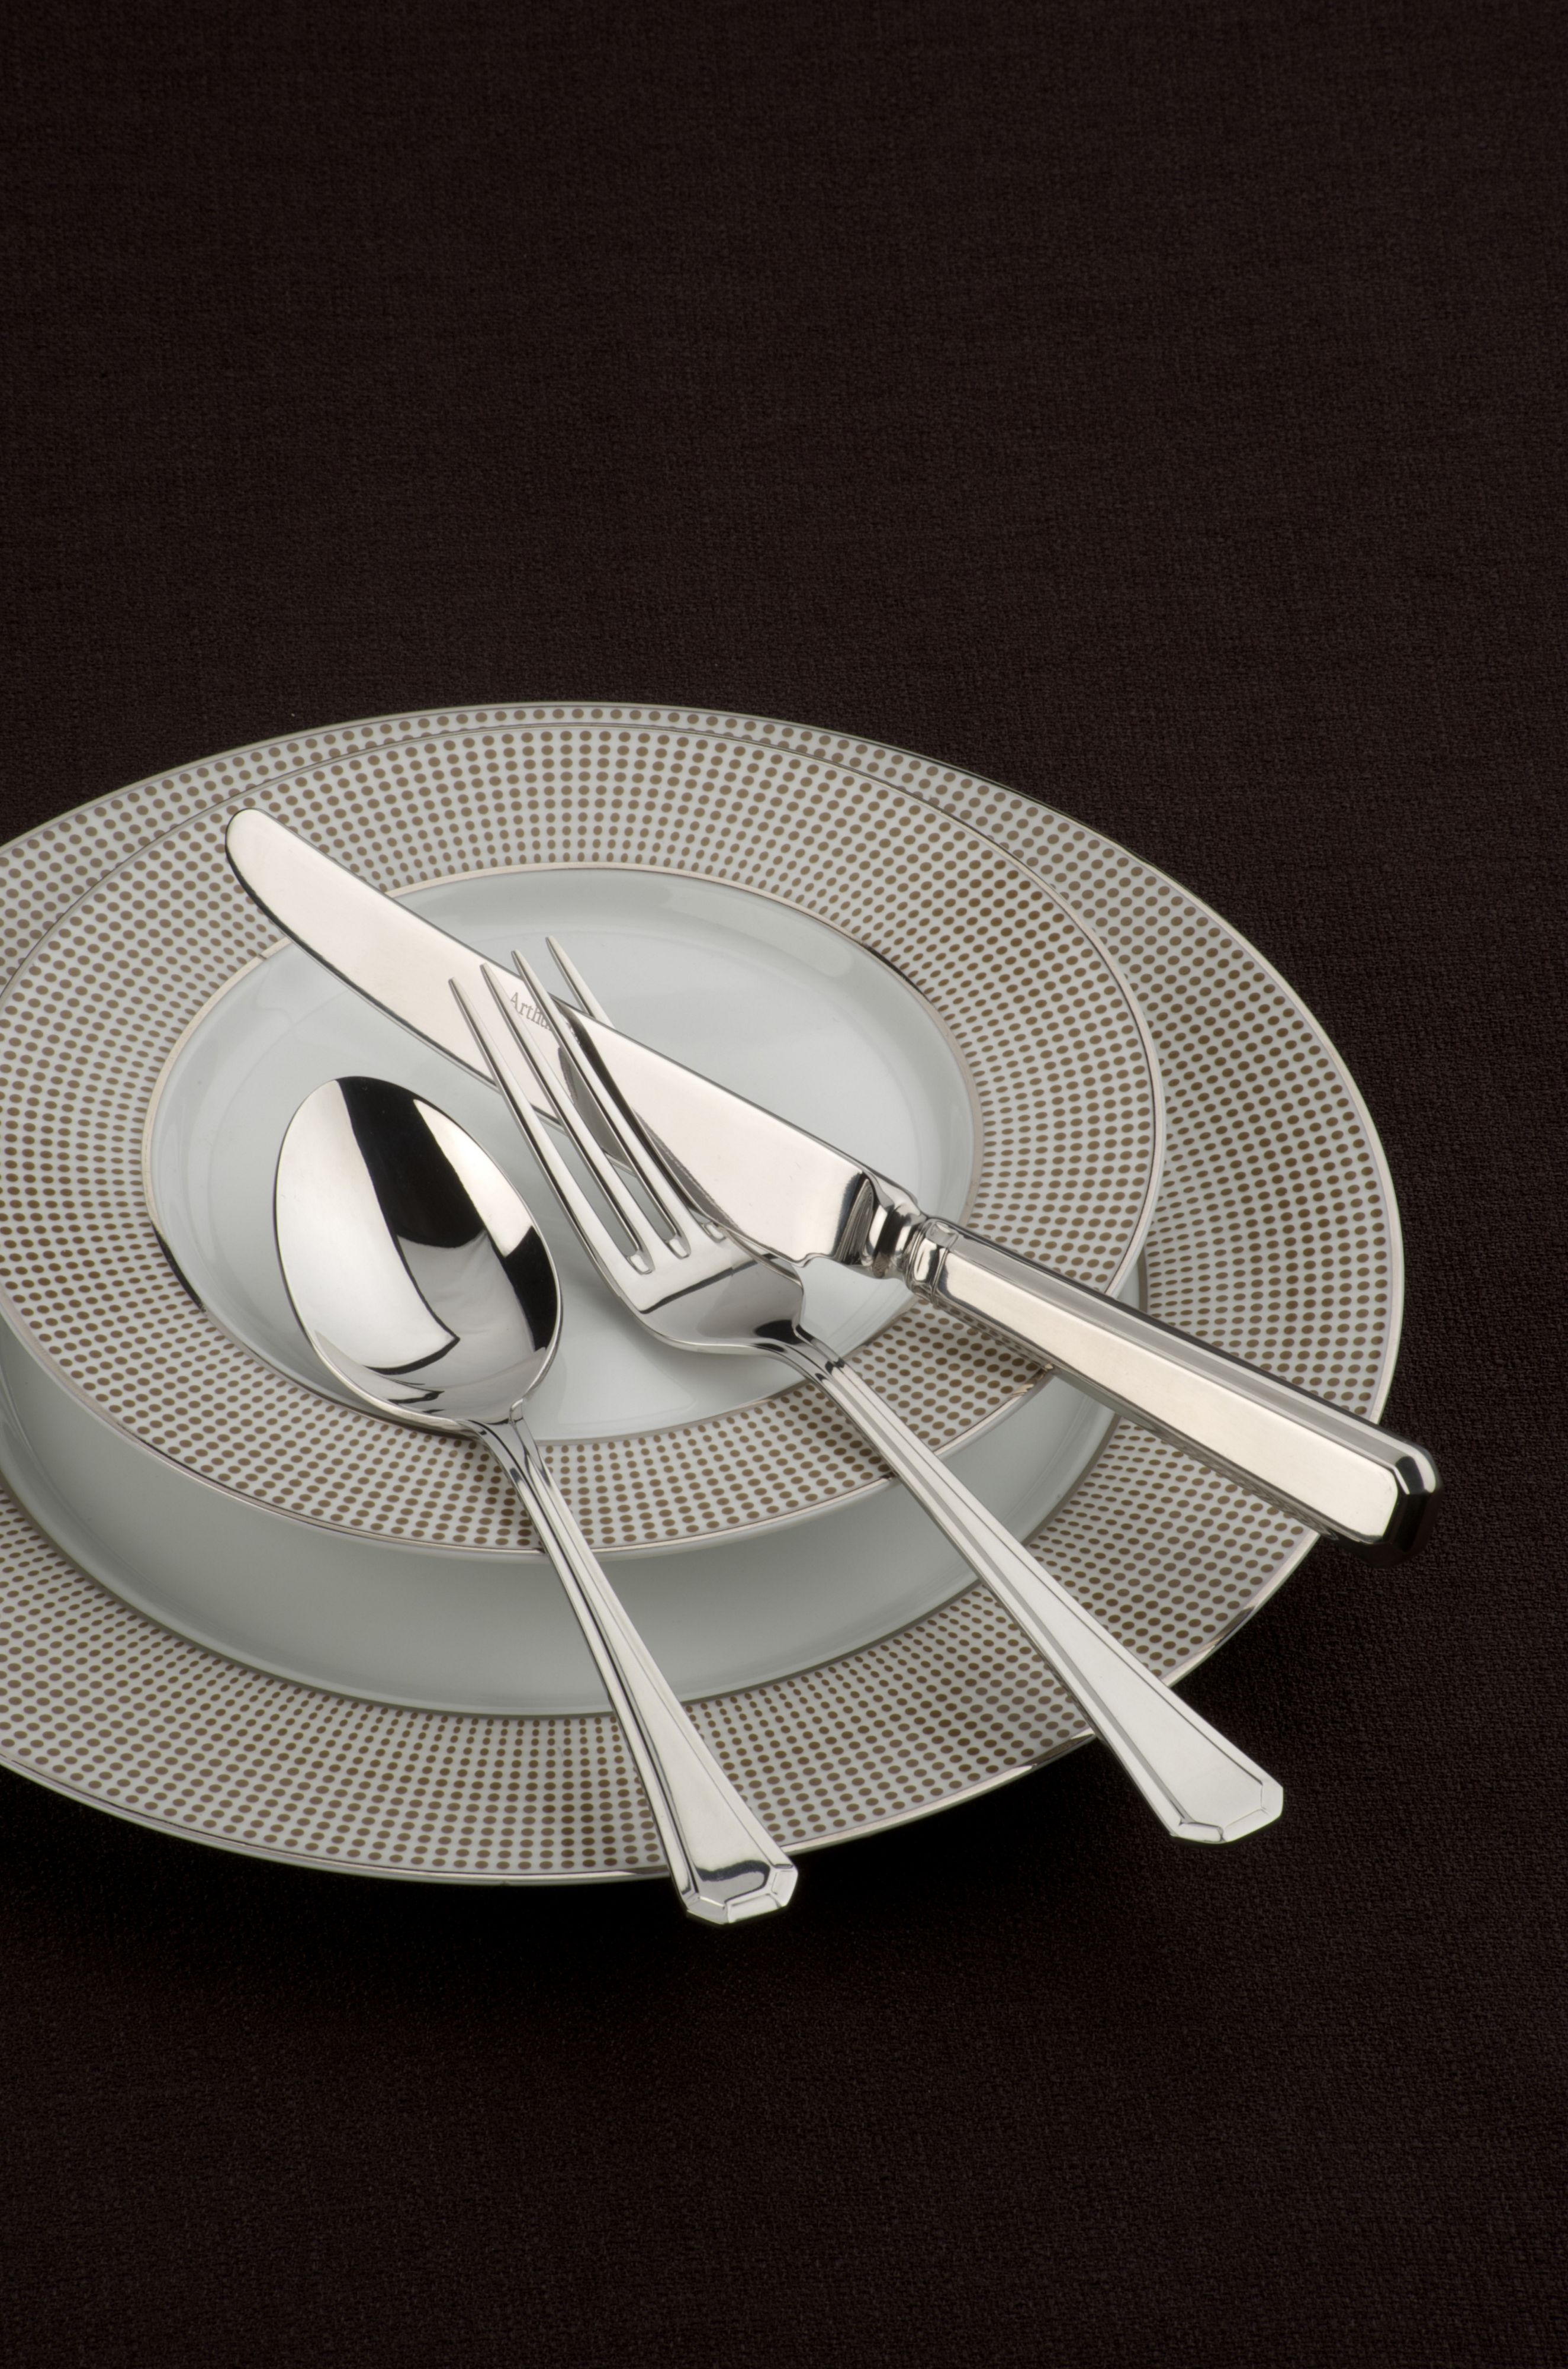 Grecian stainless steel 7 pce place setting